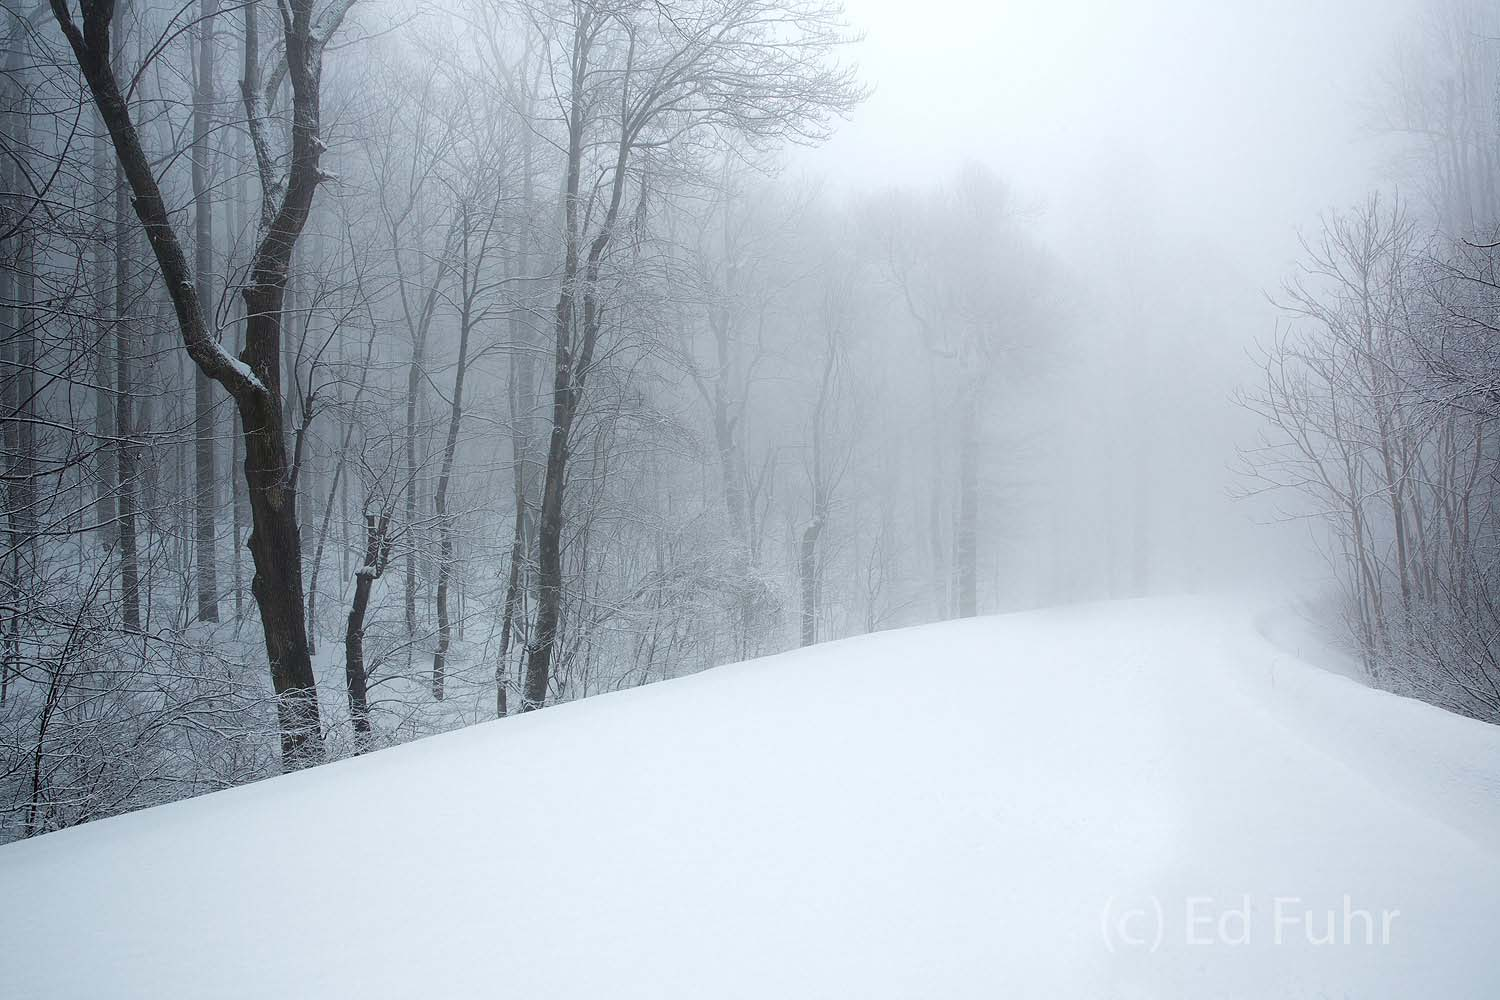 Shenandoah, Shenandoah National Park, photograph, photography, winter, images, photographs of Shenandoah National park, snow, photo